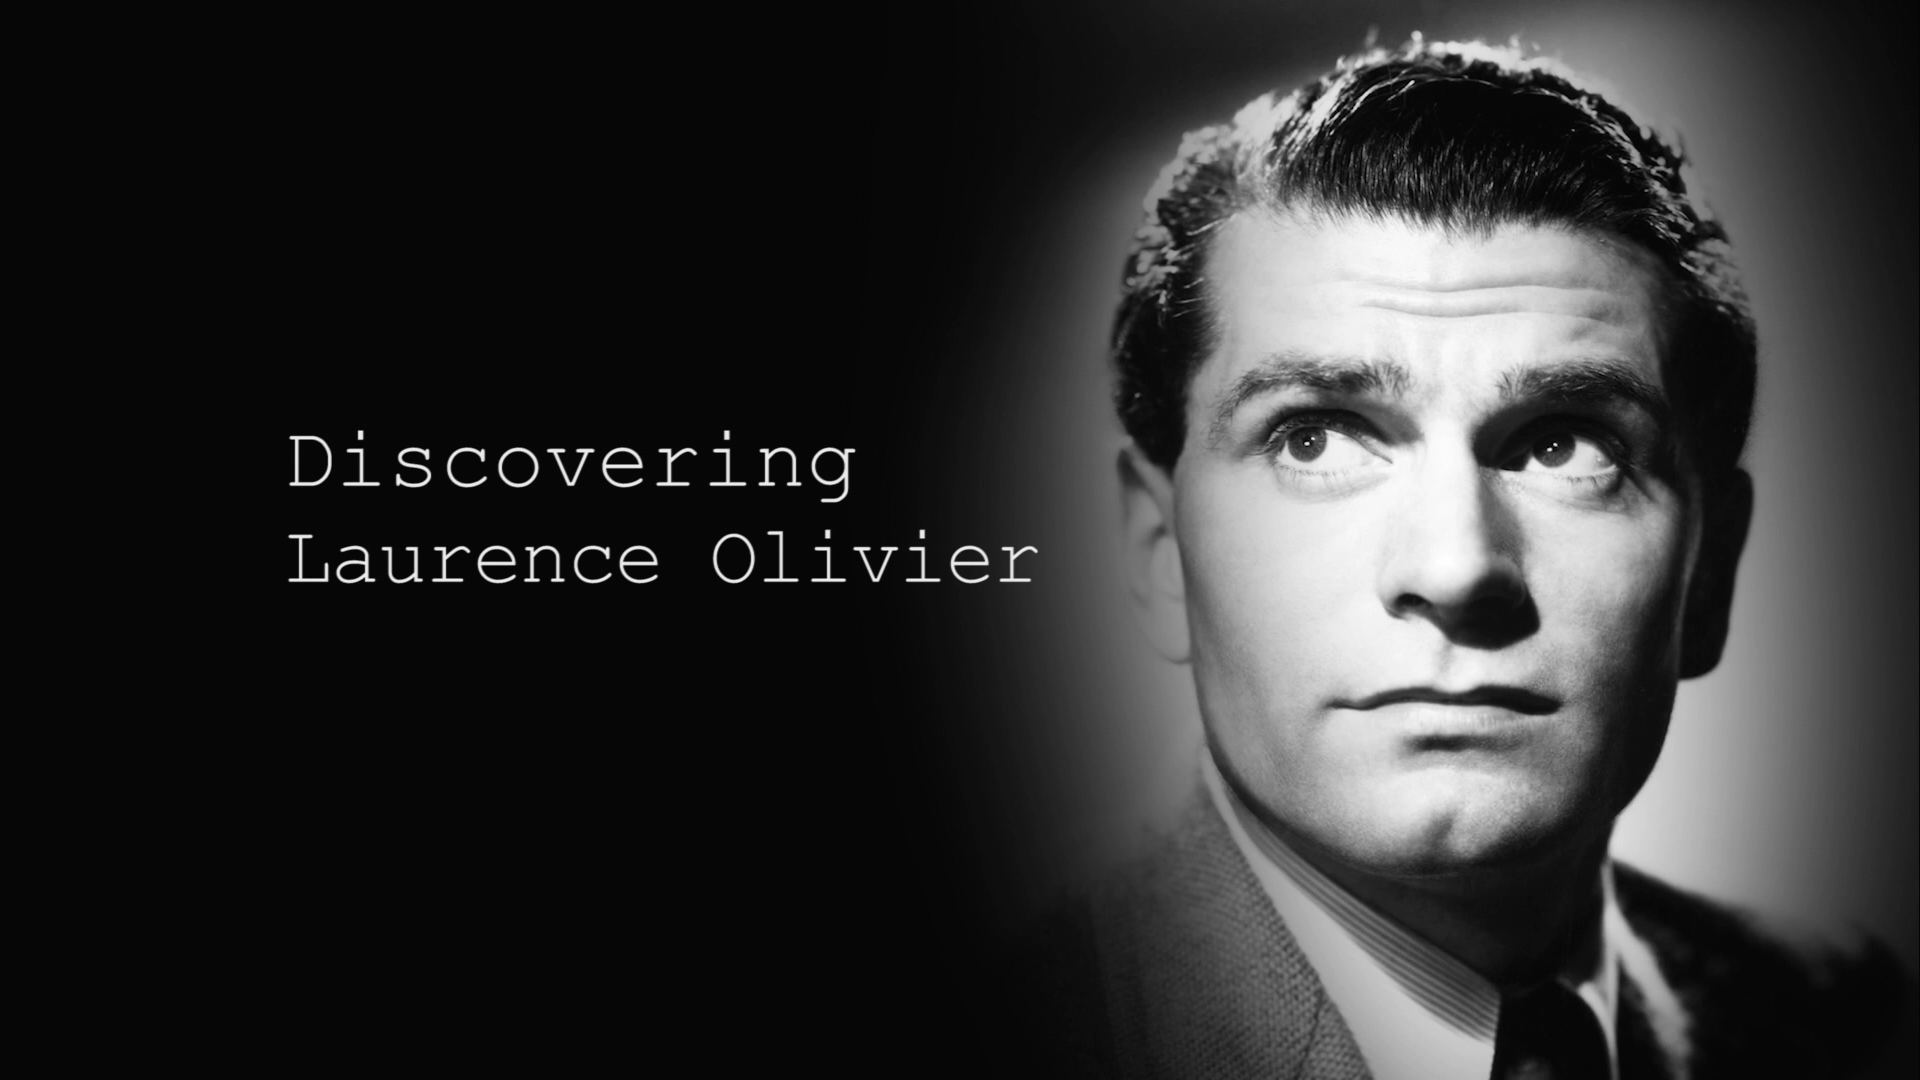 Main title from the 'Discovering: Laurence Olivier' episode of Discovering Film, featuring Laurence Olivier